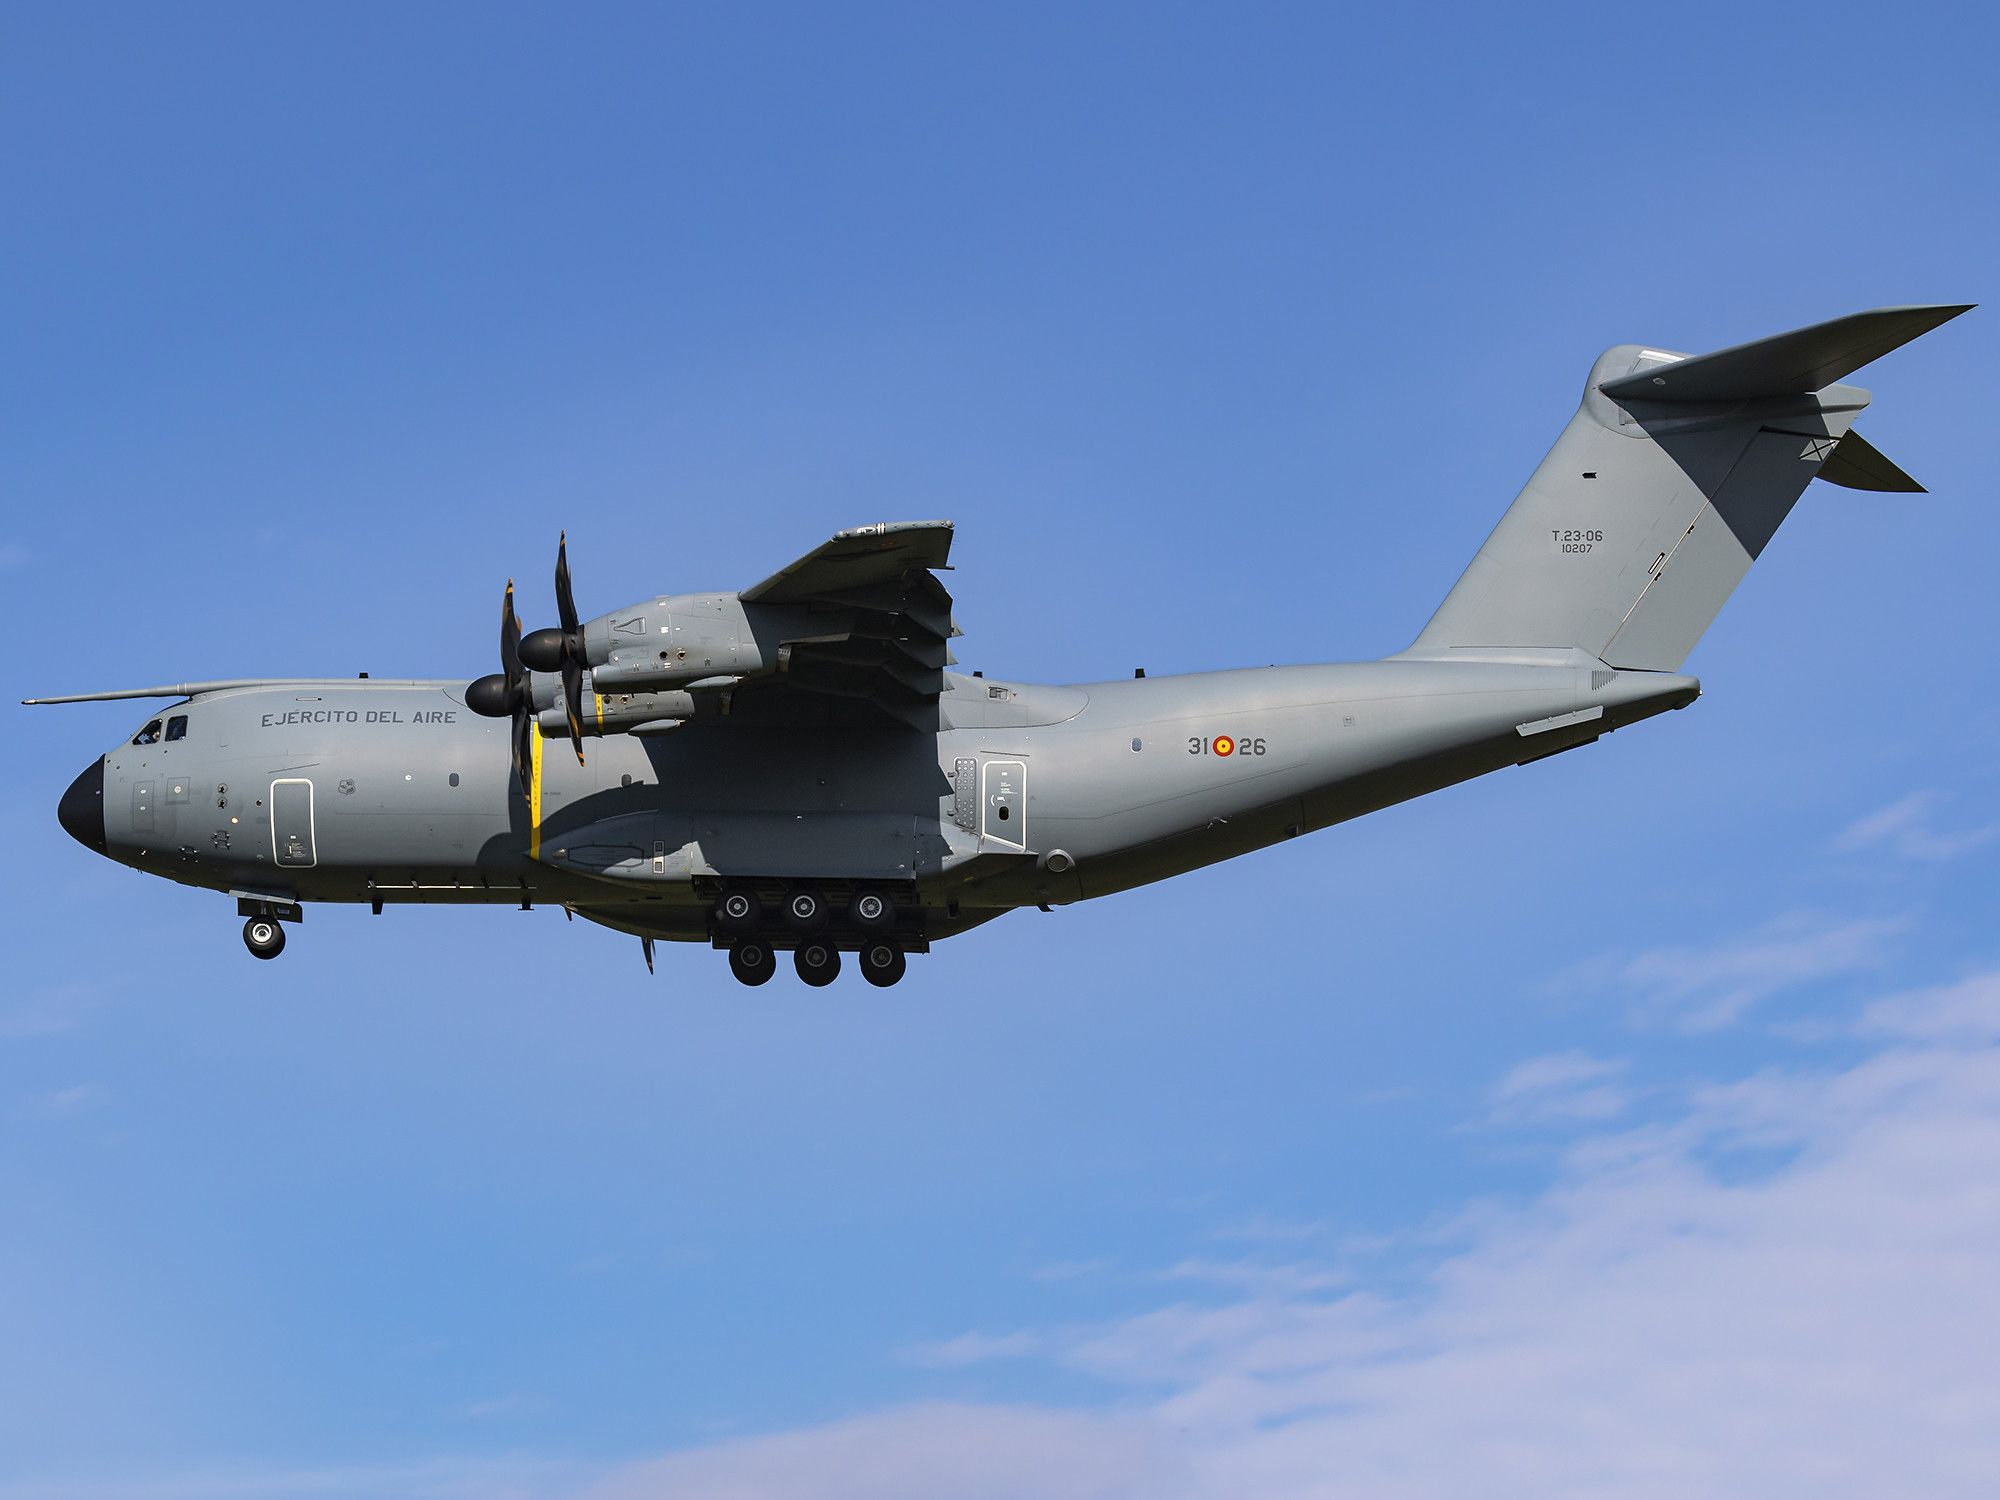 8 Facts You Need To Know About The Airbus A400M Atlas, The Replacement For The C-130 Hercules